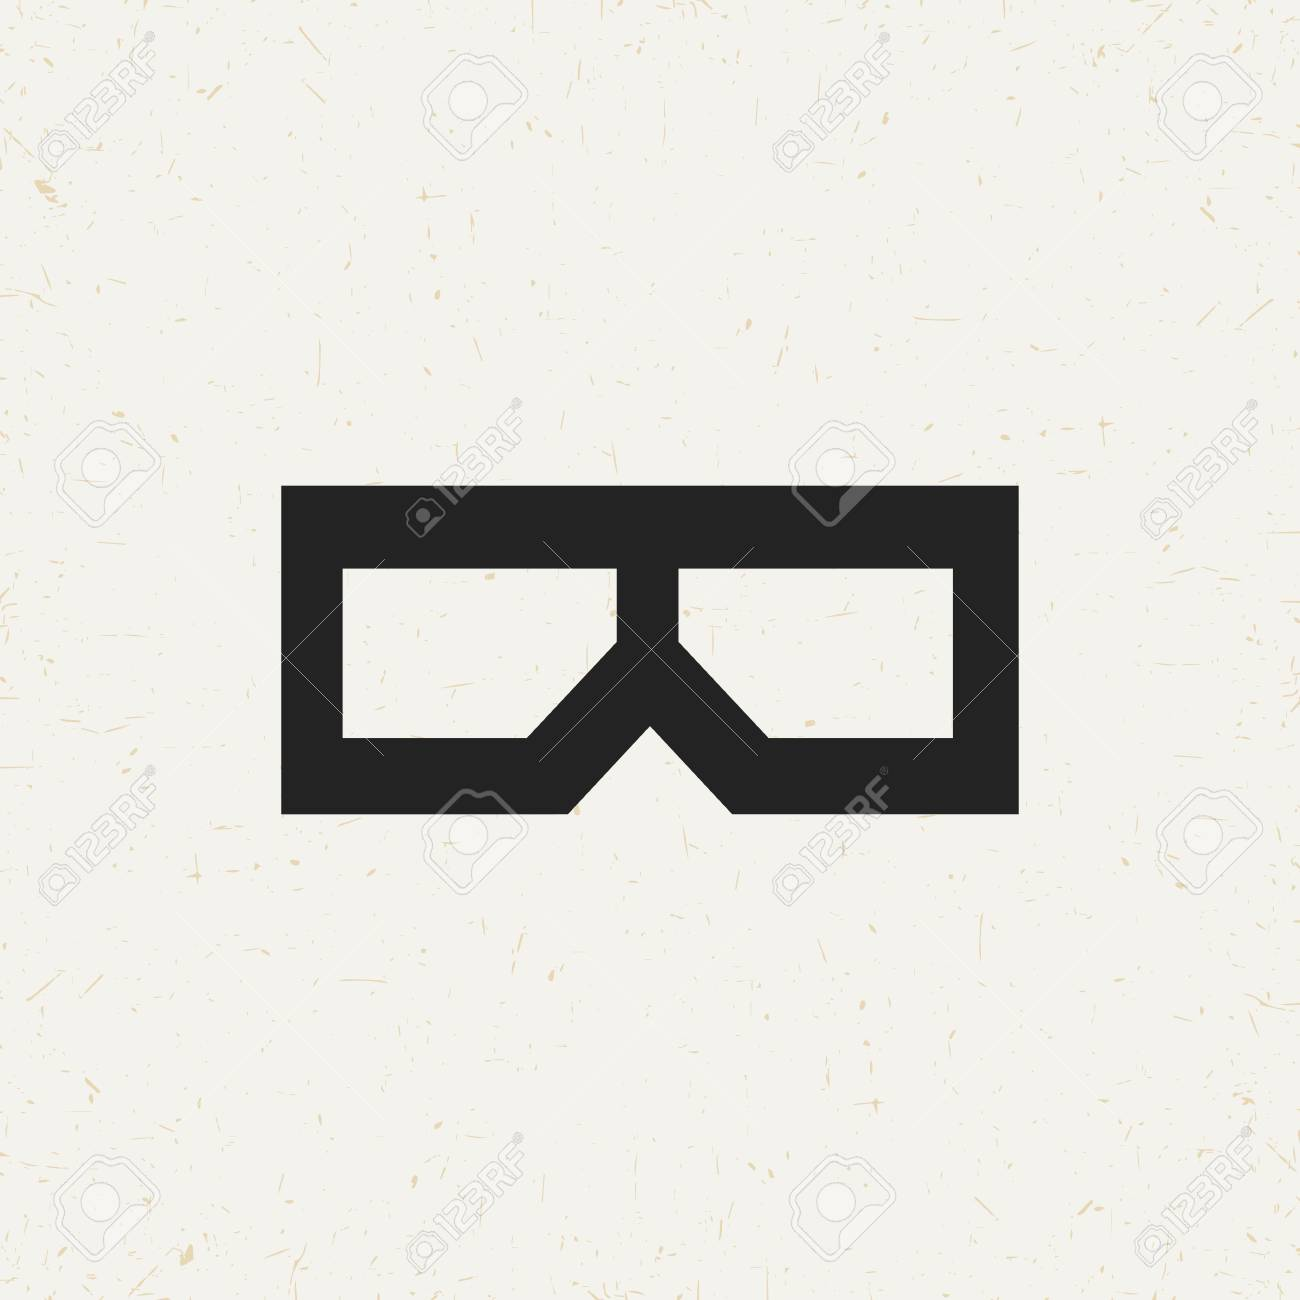 Isolated 3d Glasses Symbol In Vintage Style Royalty Free Cliparts